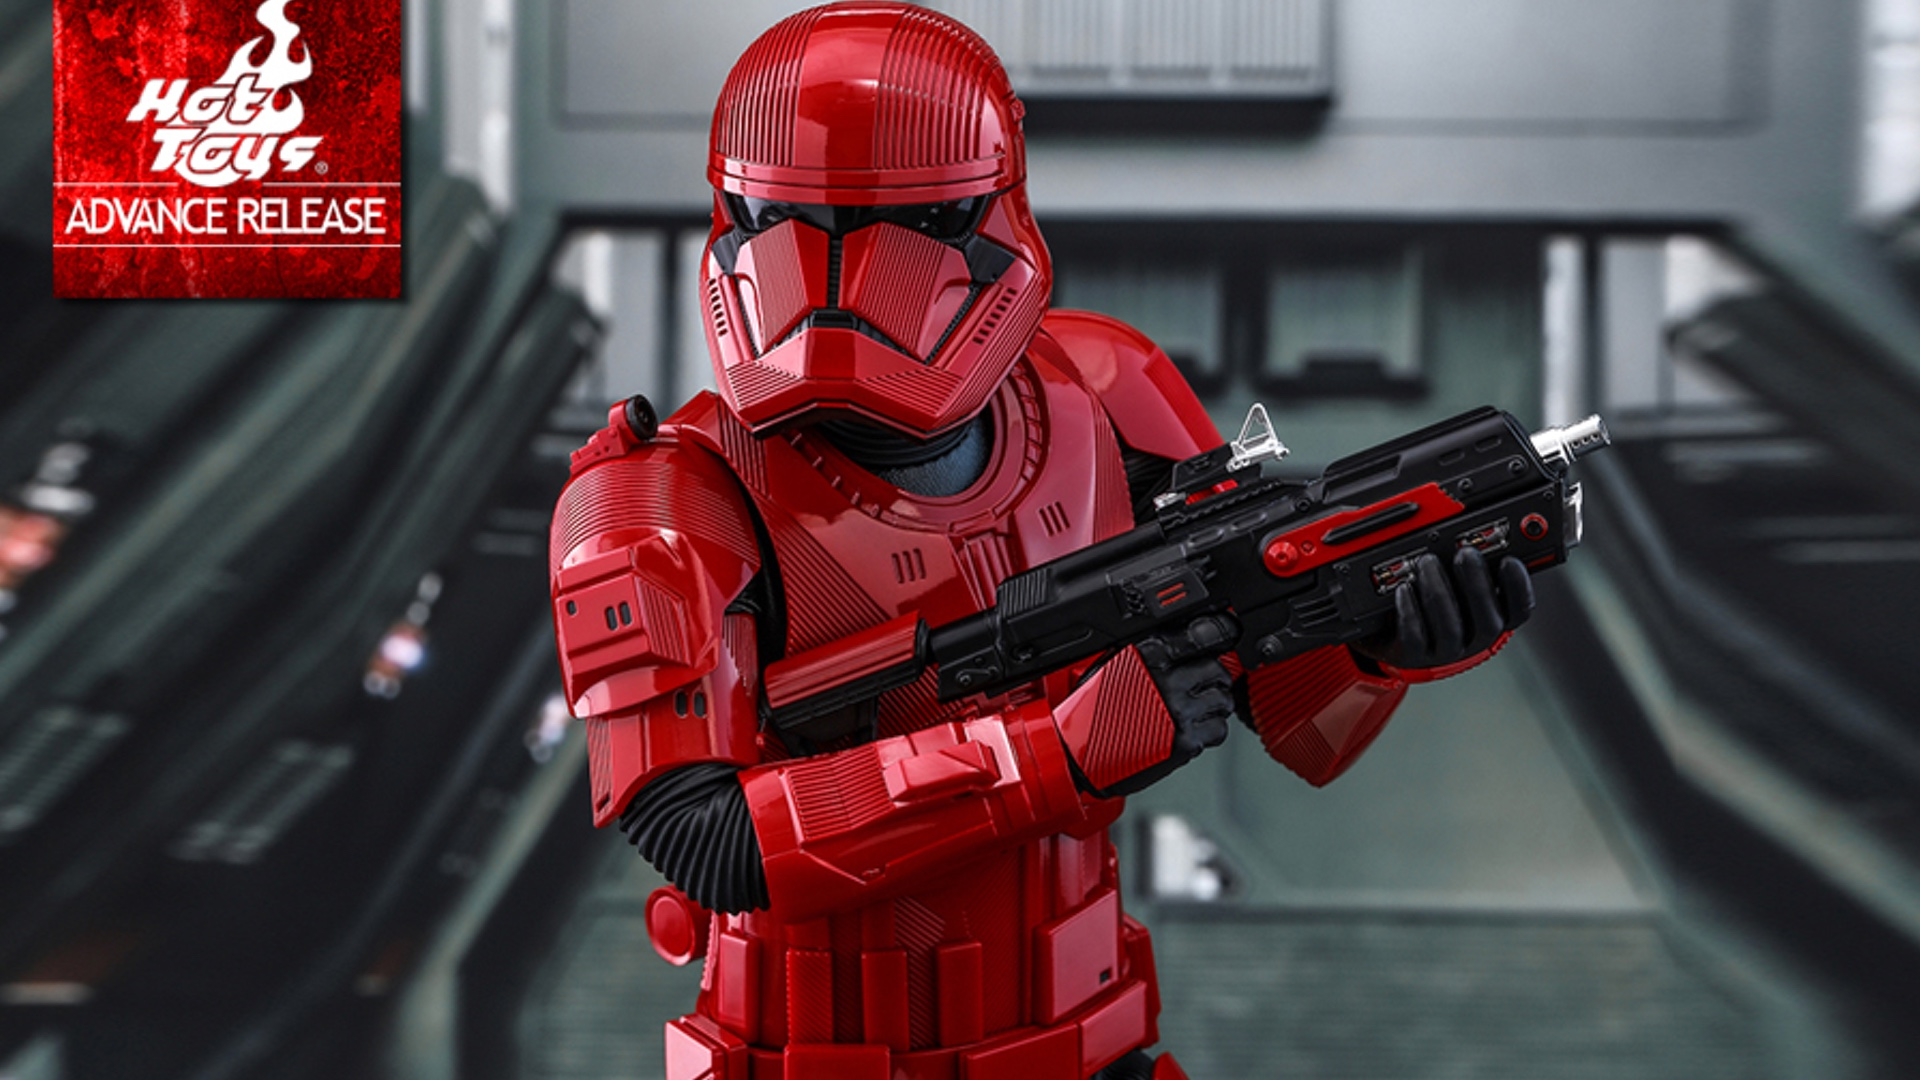 heres-our-first-look-at-the-sith-trooper-from-star-wars-the-rise-of-skywalker-which-is-coming-to-comic-con-social.jpg